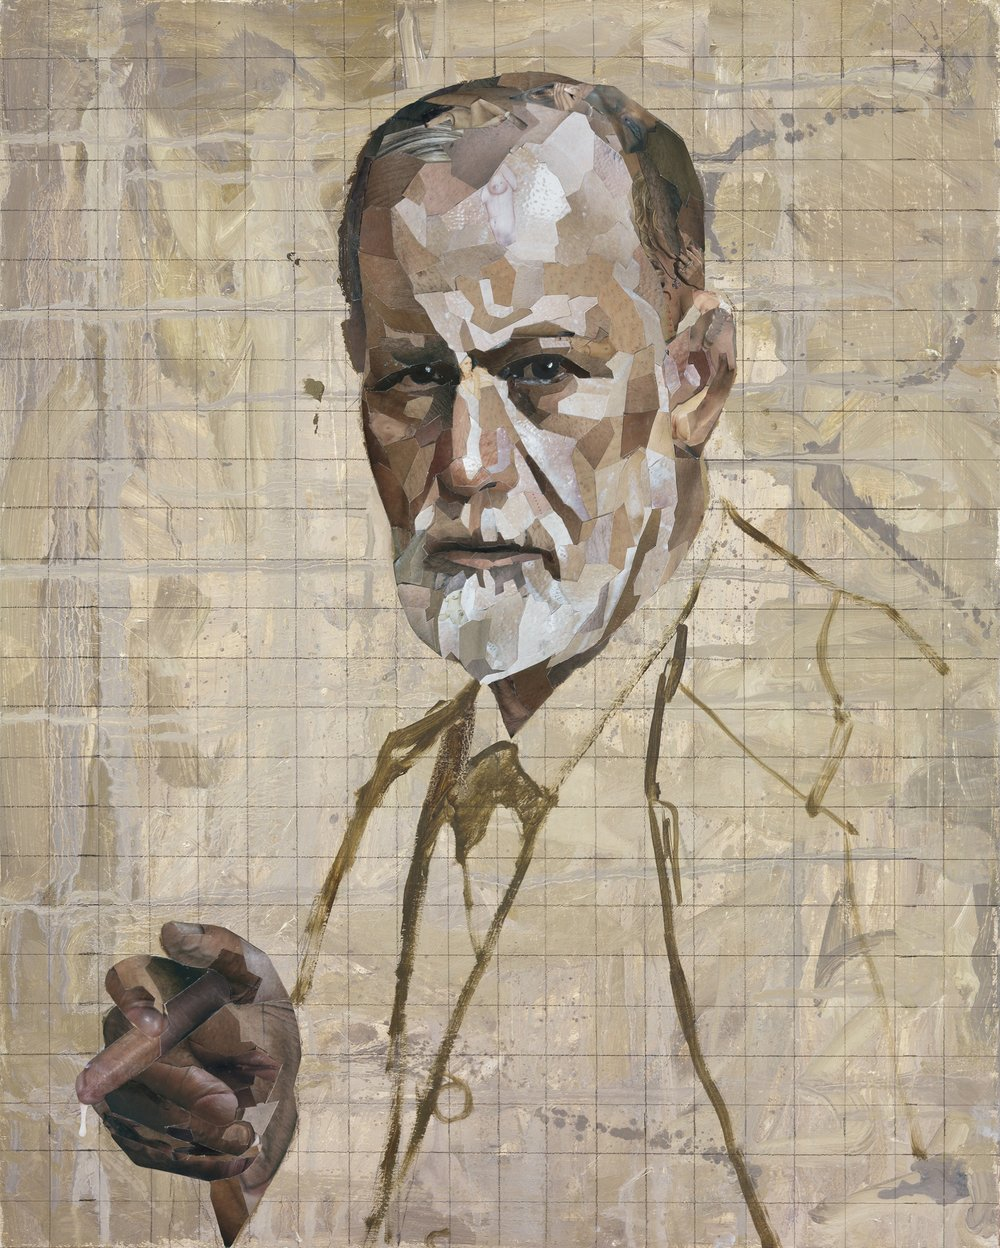 Sigmund_Freud_Collage_2000_2496_s.jpg